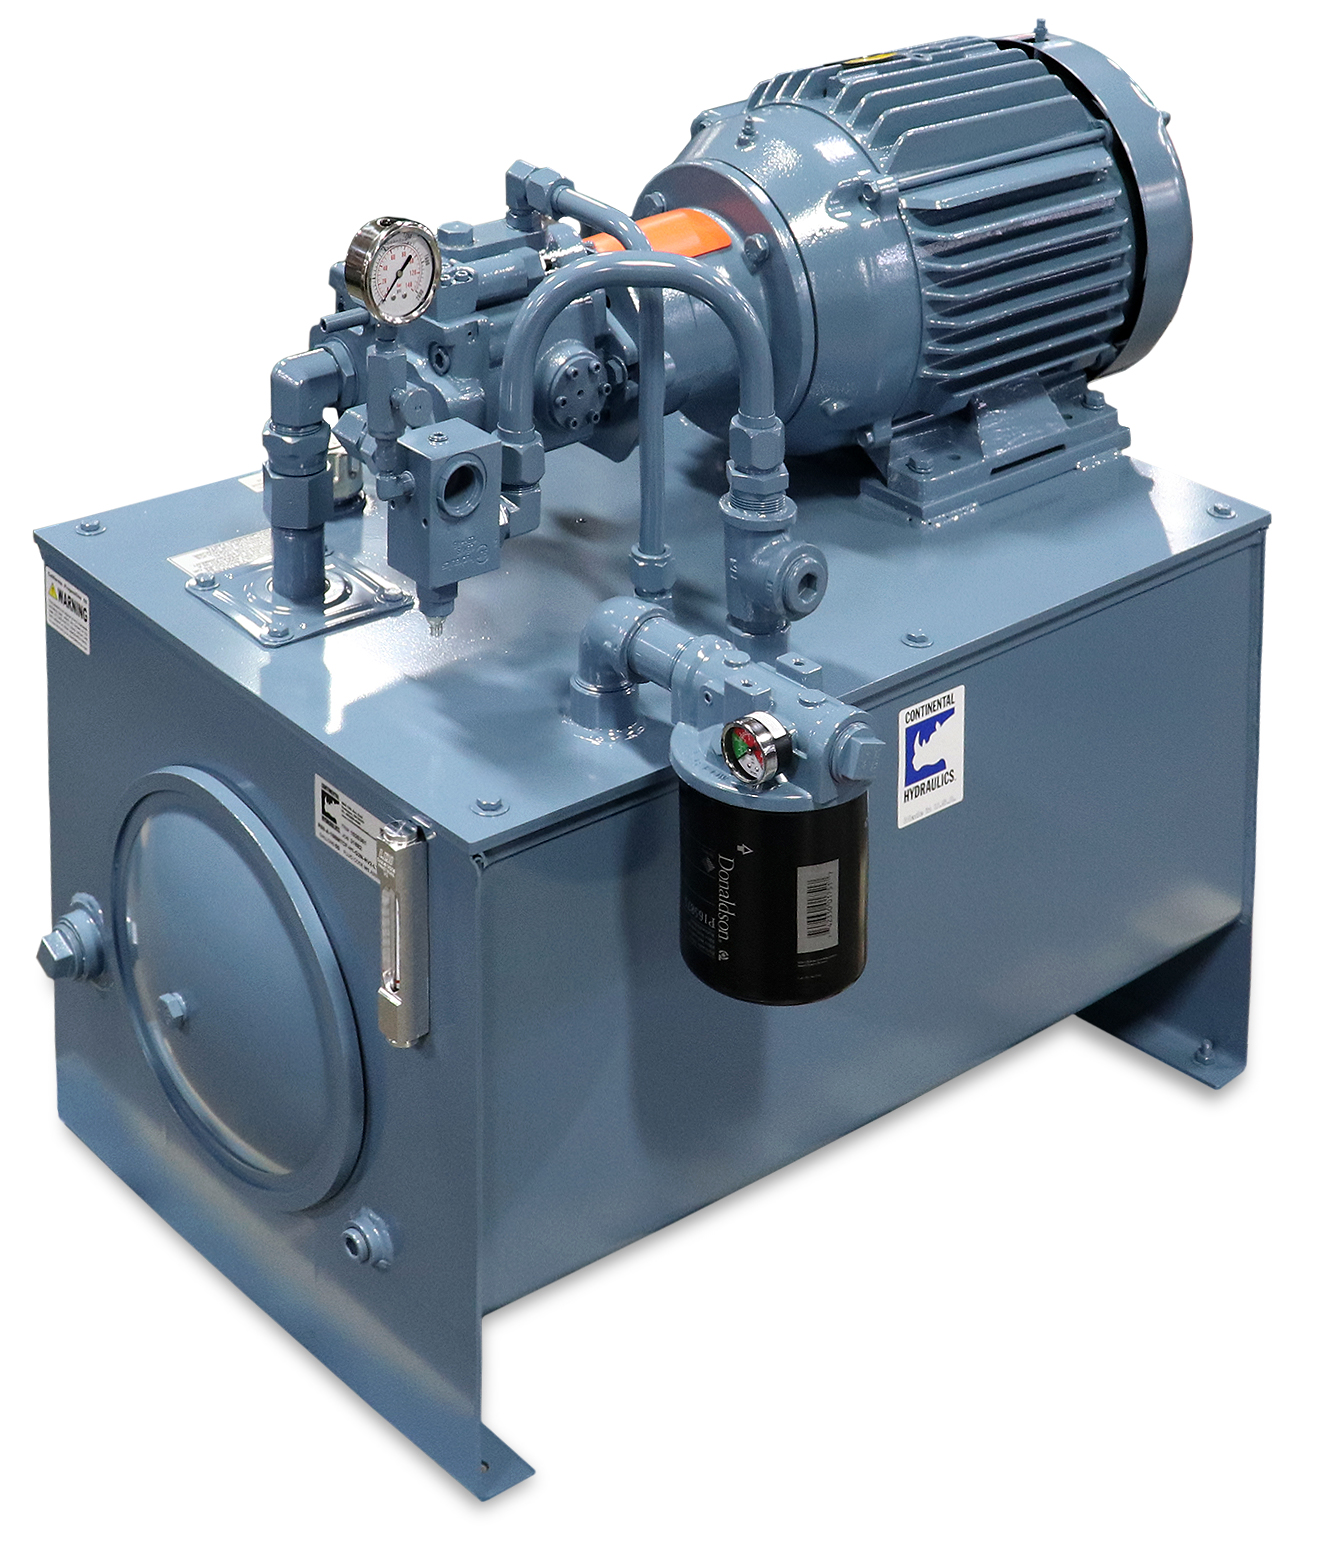 NFPA-JIC power unit; white background